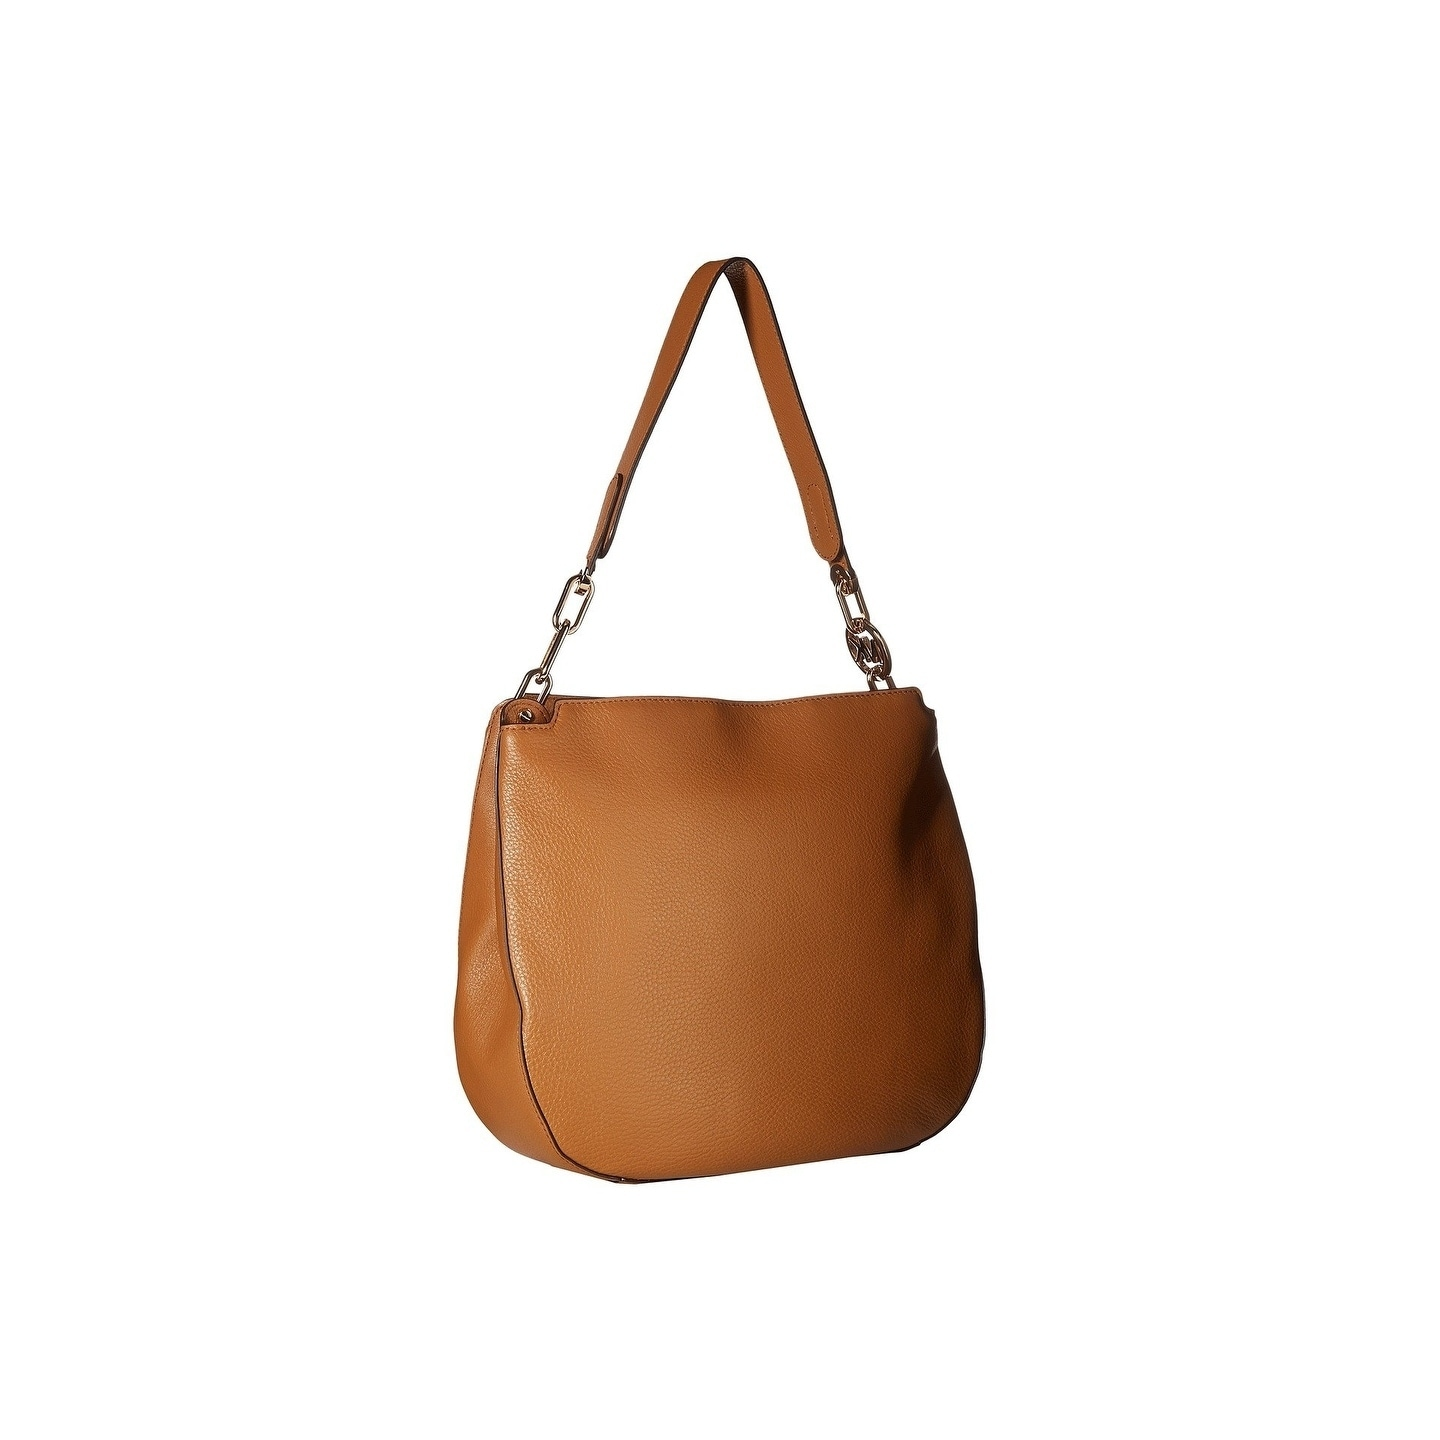 df51fe9b427c Shop MICHAEL Michael Kors Fulton Large Acorn Hobo - Free Shipping Today -  Overstock - 22364236